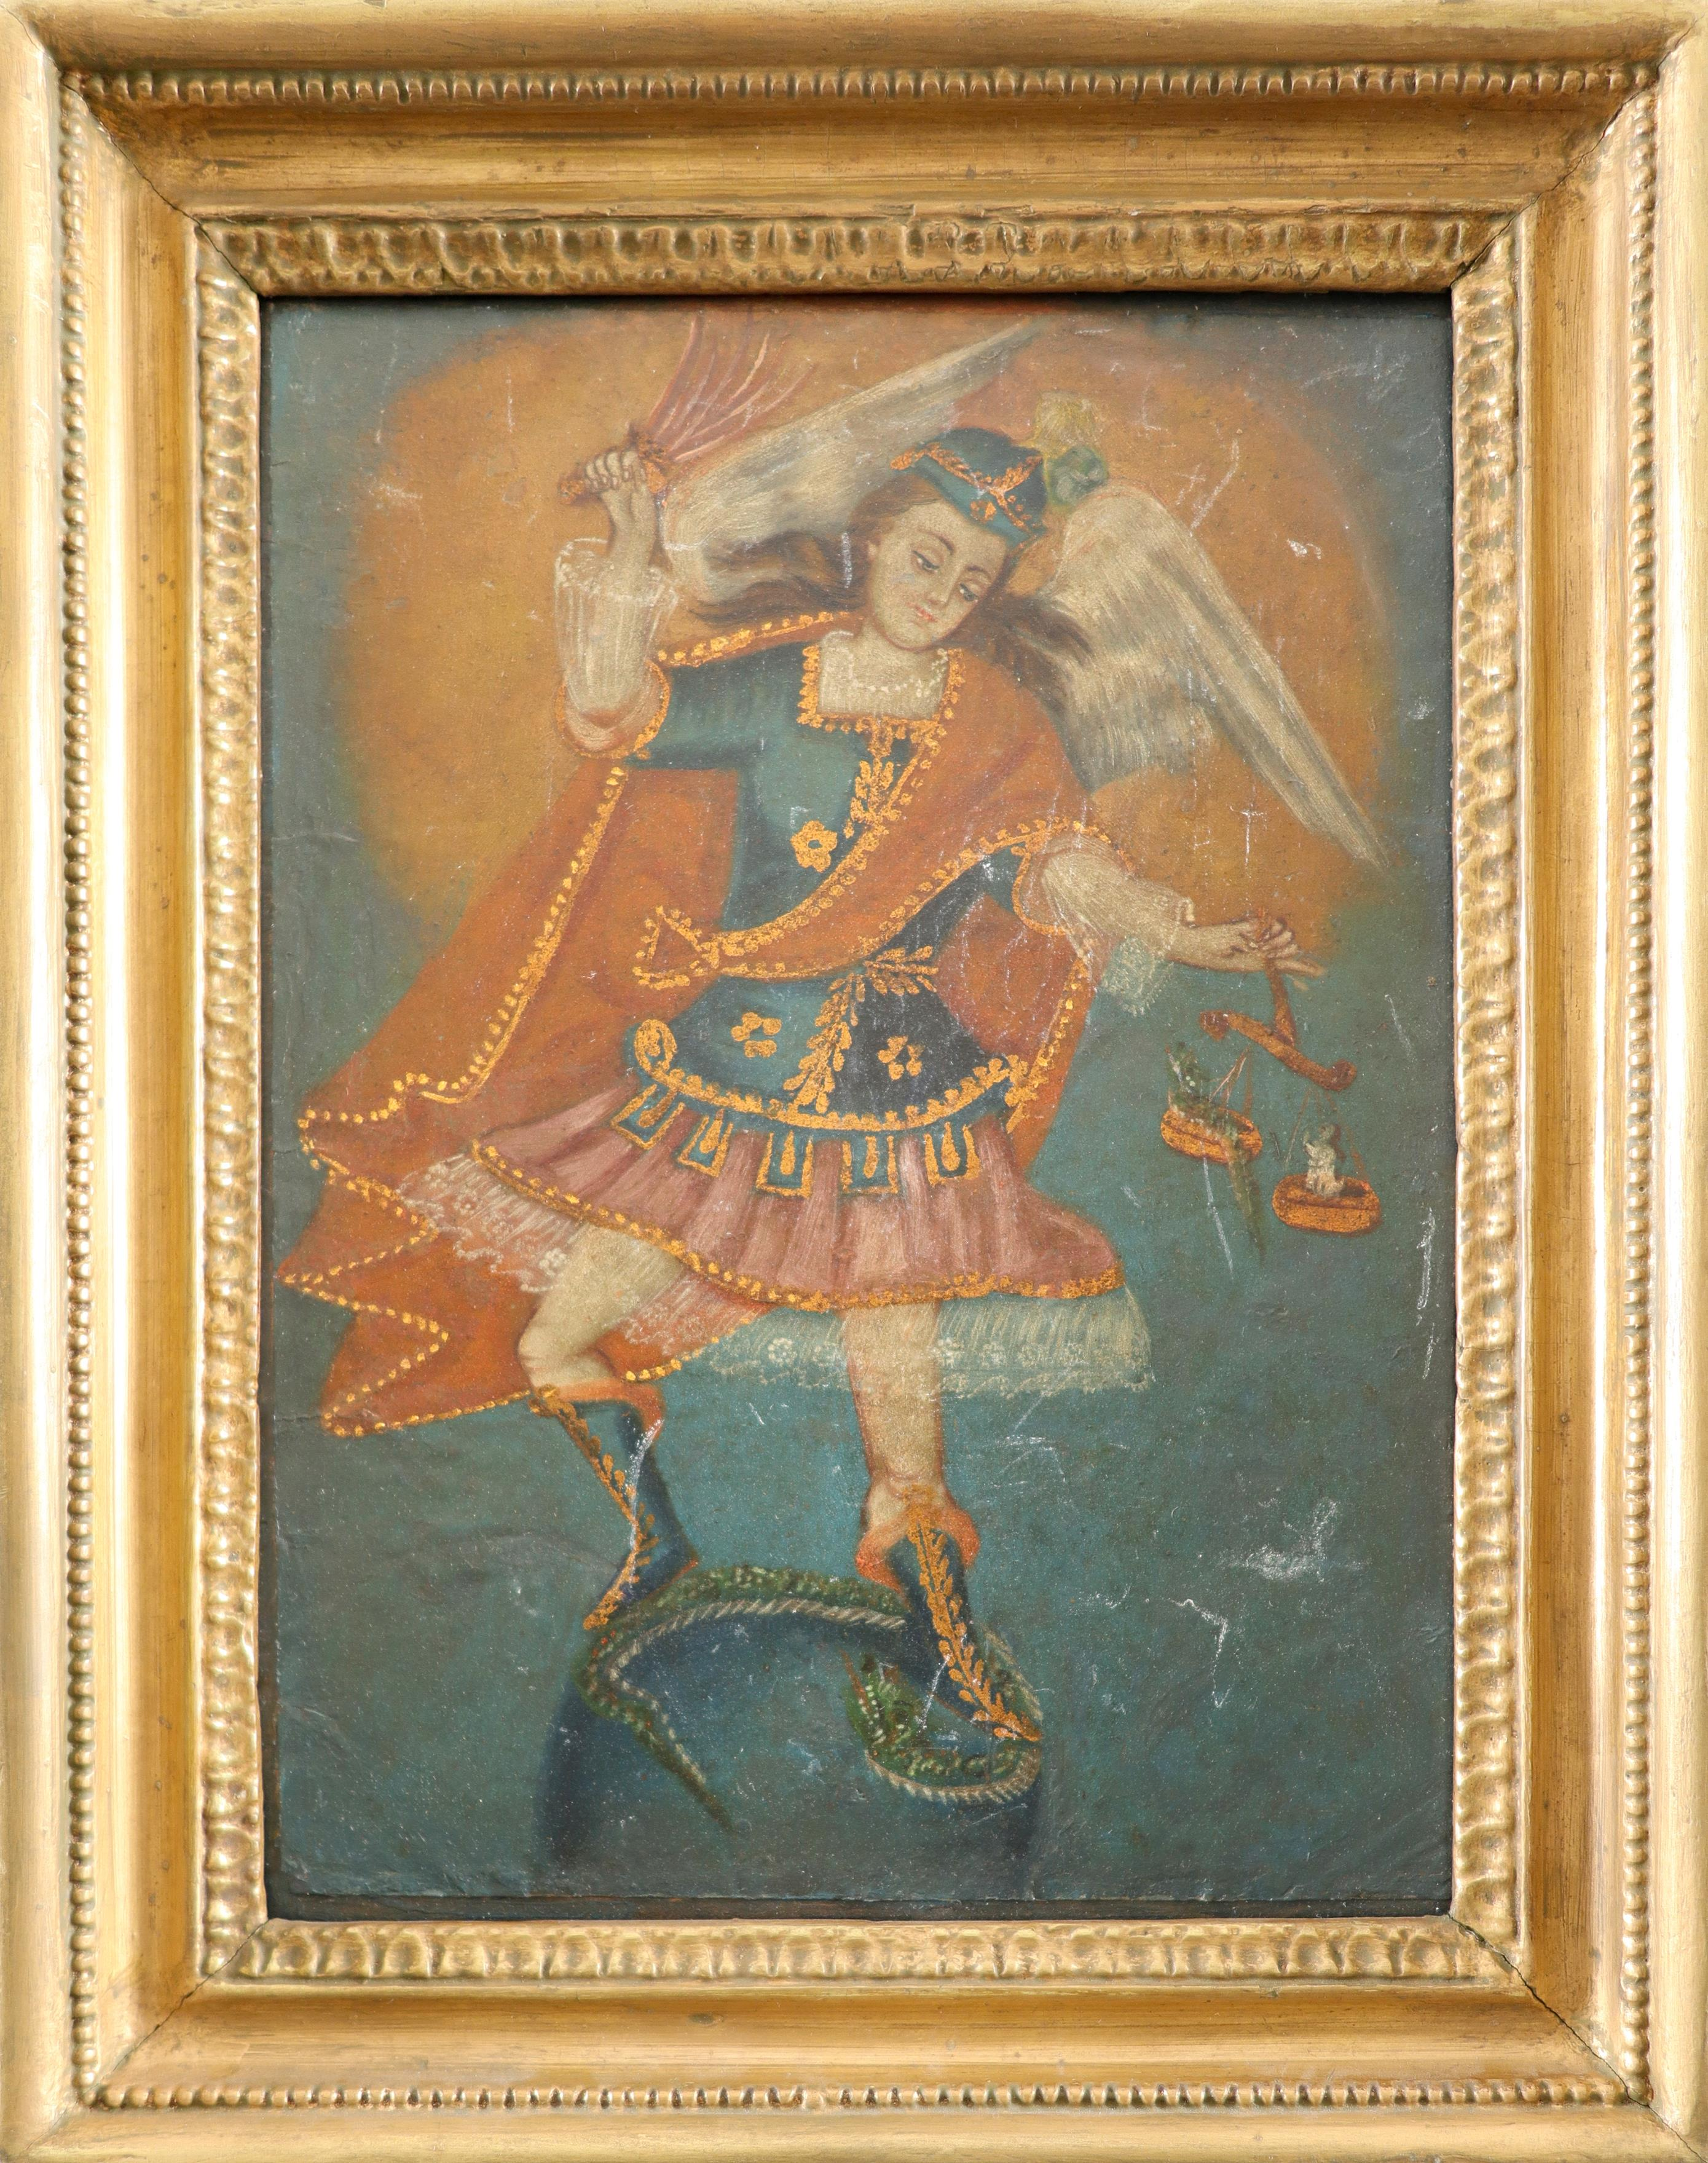 Cuzco School St. Michael vanquishing the devil Oil on paper laid on board 27.4 x 19.3cm; 10¾ x 7½in - Image 2 of 3